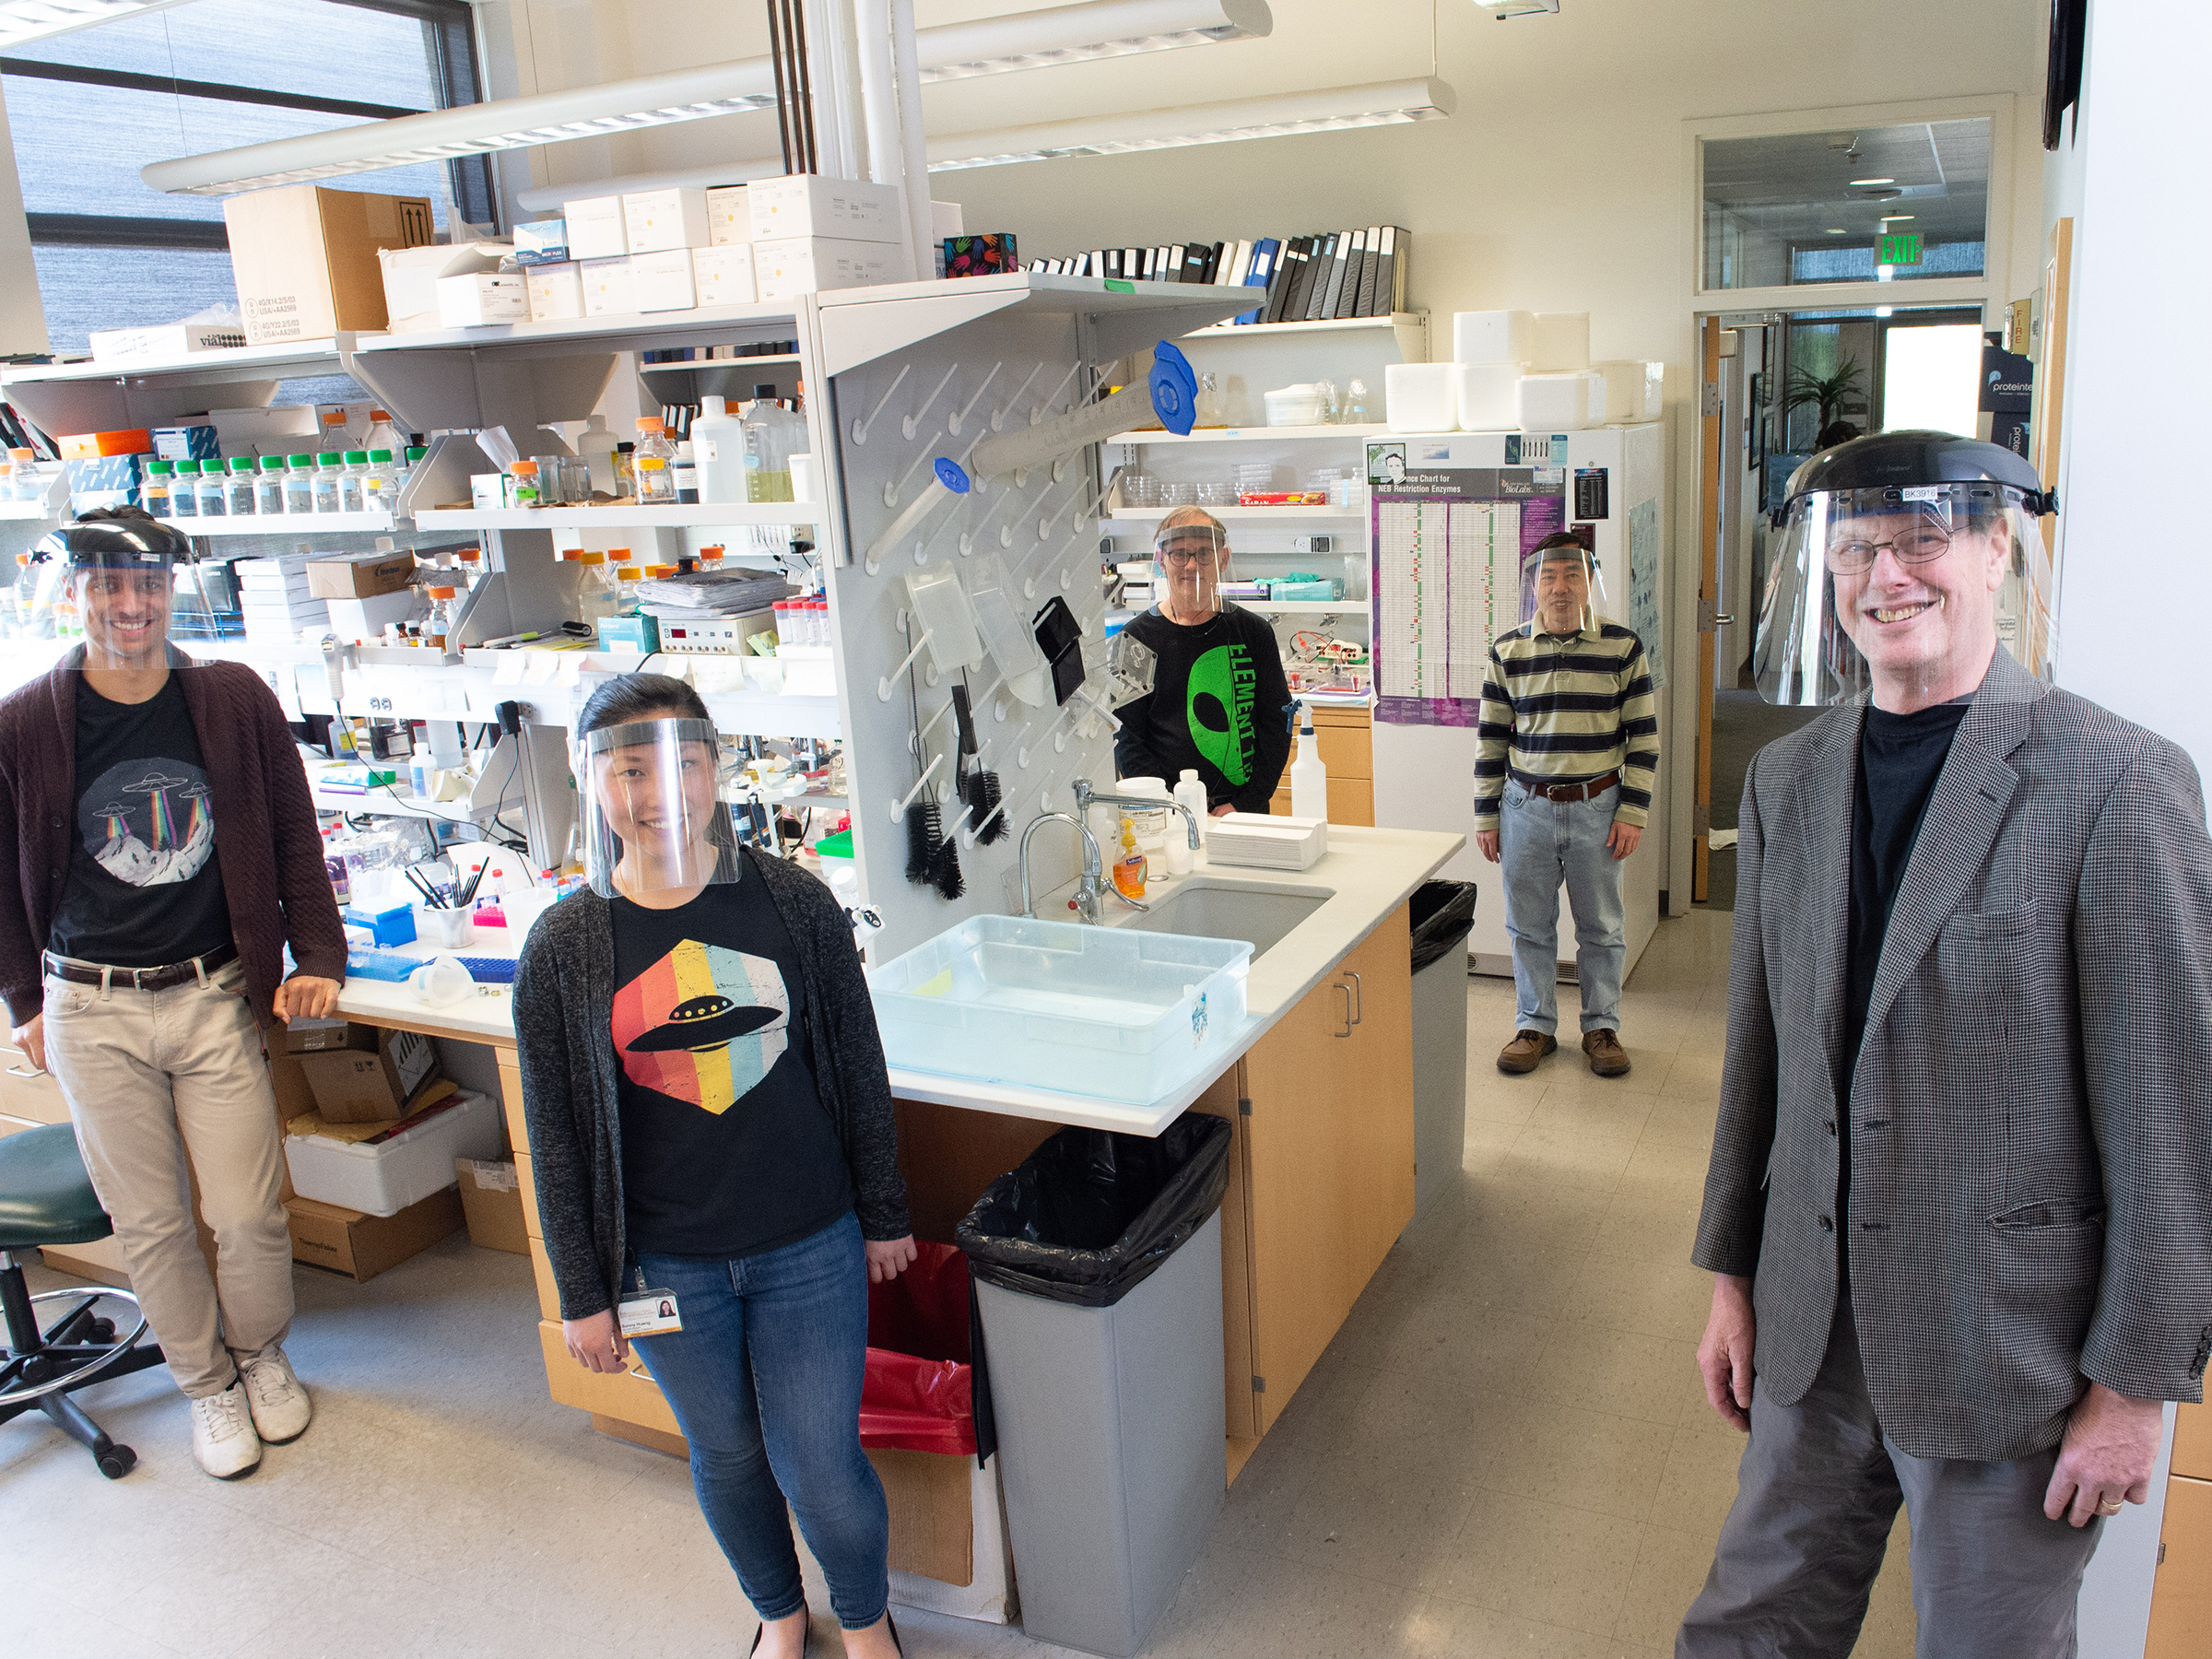 Val Sheffield (right), with members of his research laboratory (from left): Calvin Carter, Sunny Huang, Charles Searby, and Qihong Zhang.